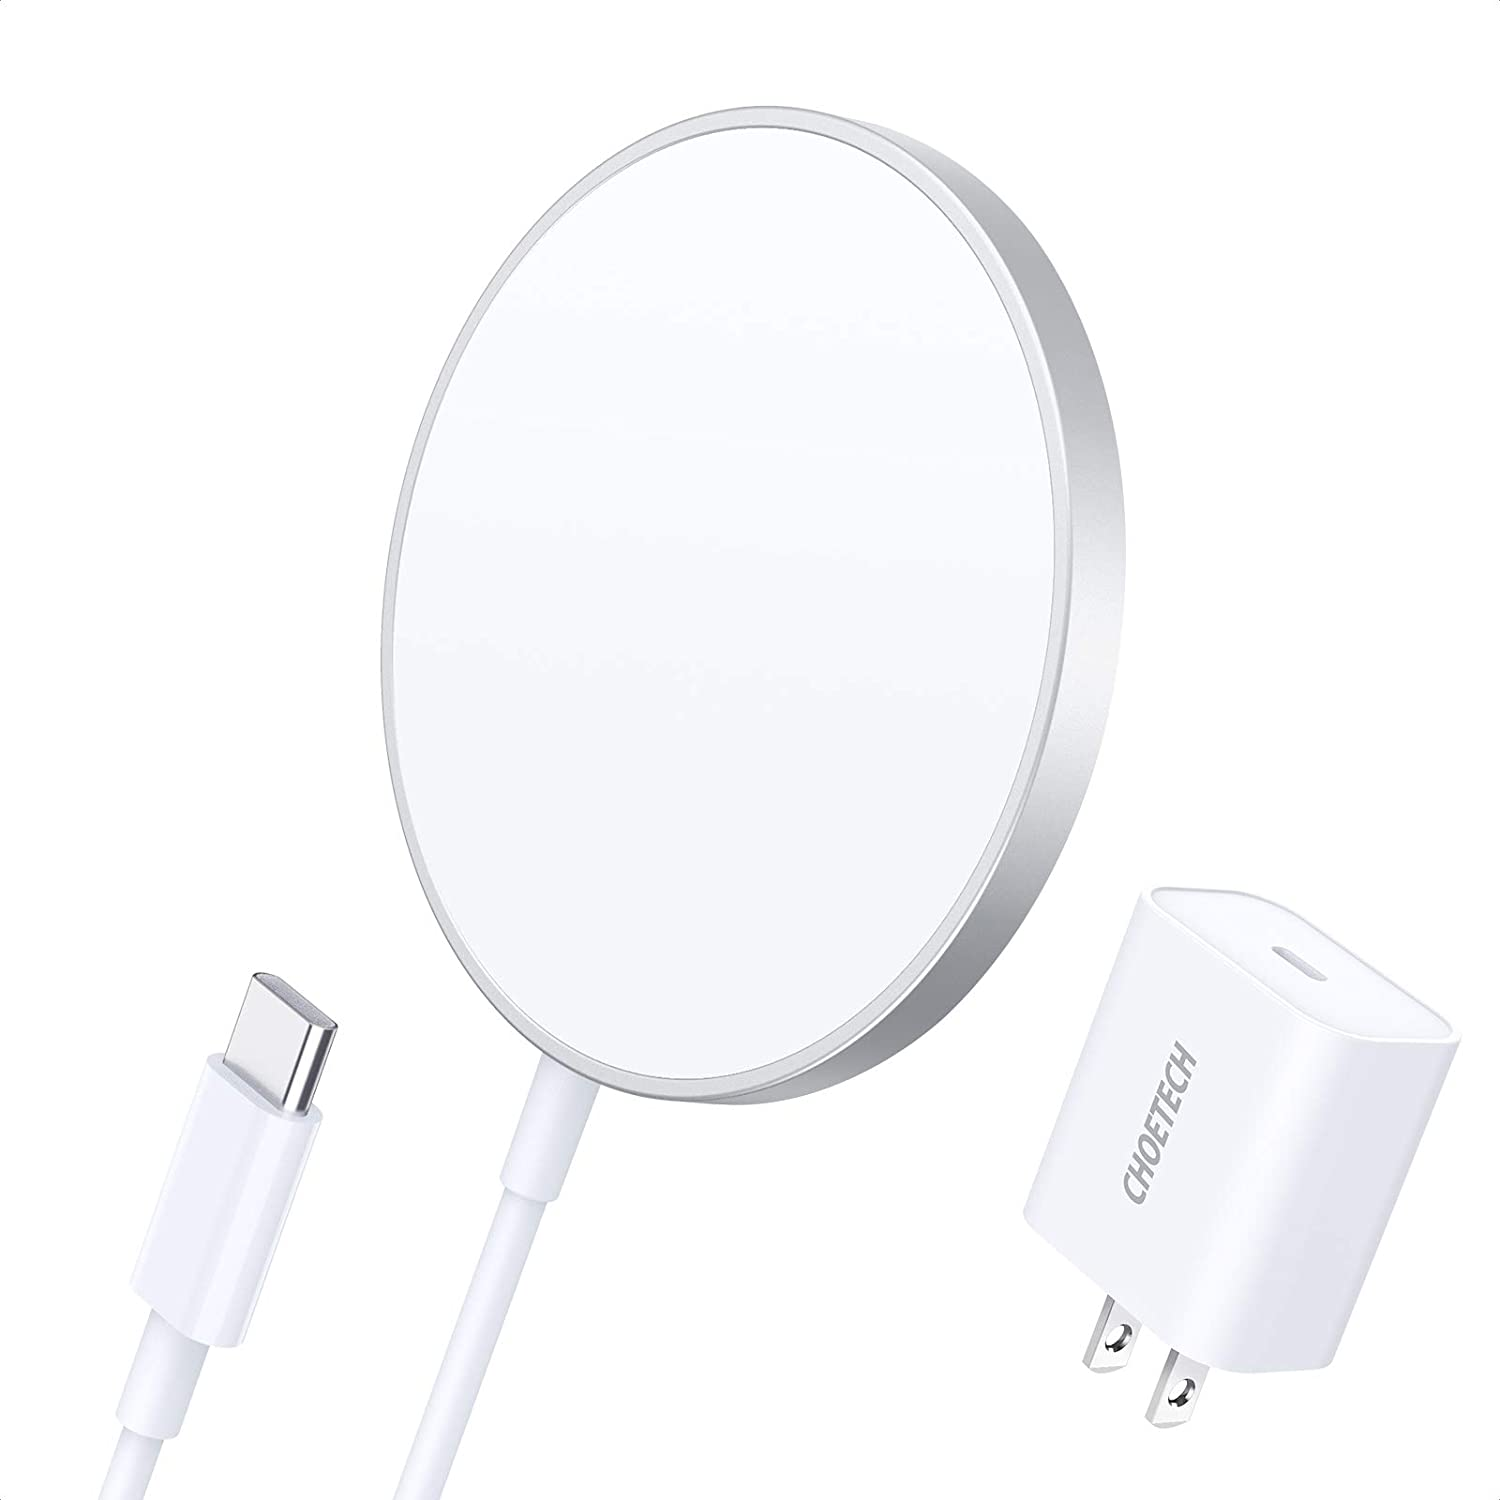 best wireless charger for iphone 12 pro max with case